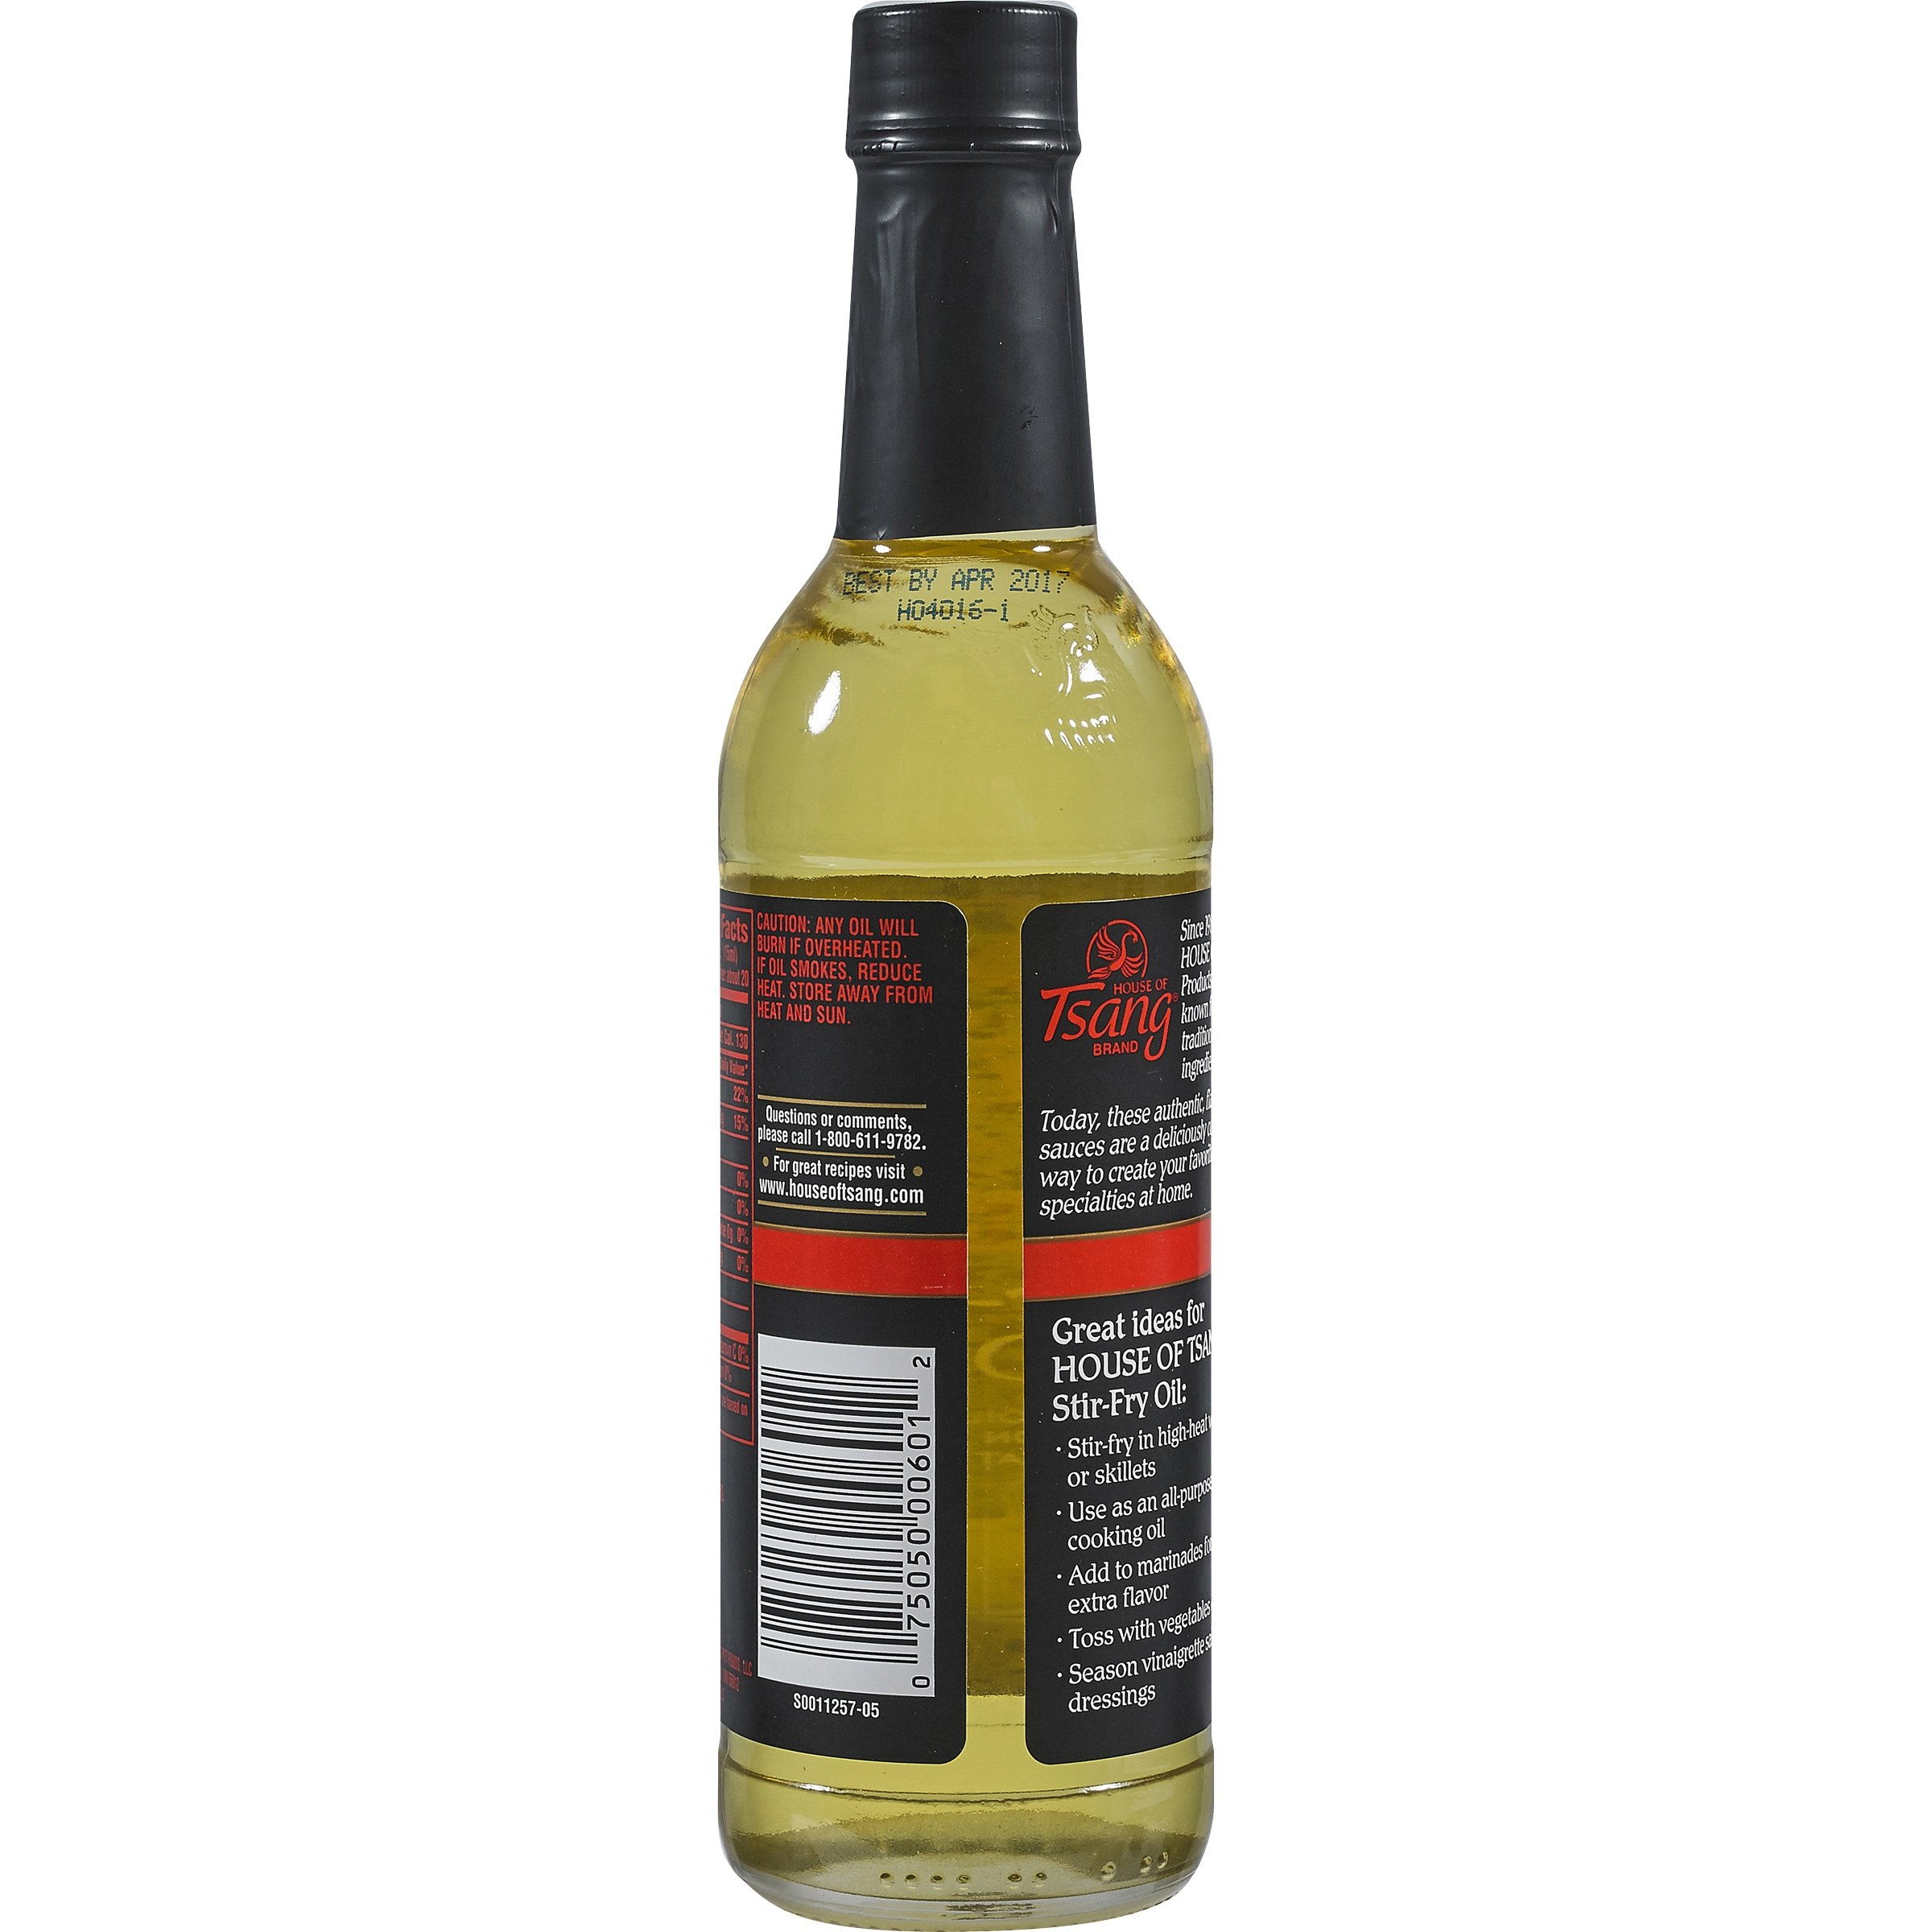 PACK OF 12 - House of Tsang Stir-Fry Cooking Oil, 10 fl oz by _House of Tsang (Image #2)